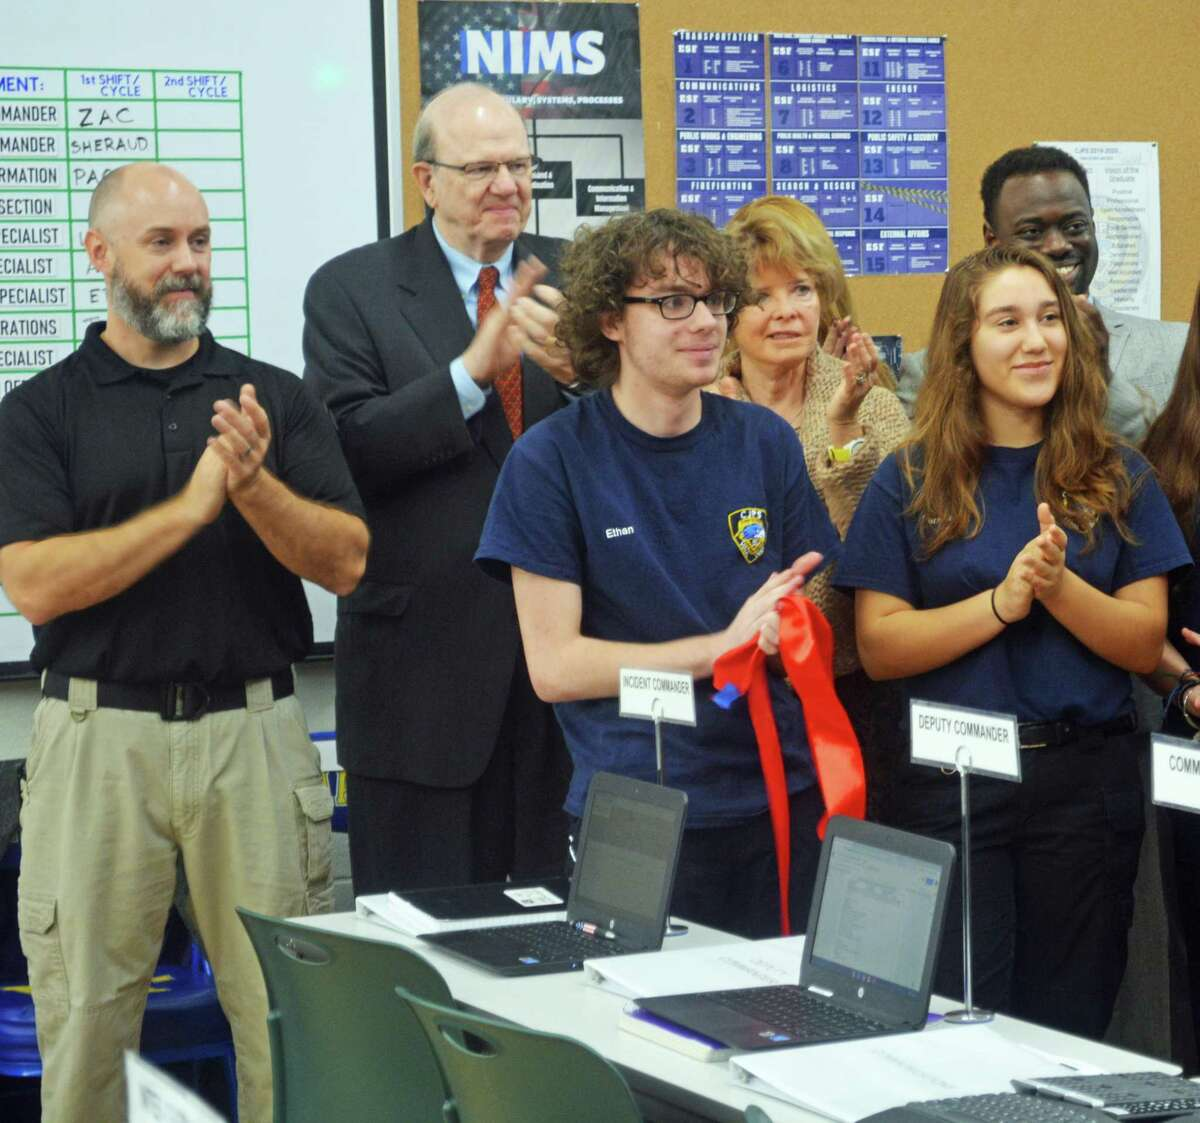 Vinal Tech's emergency operations center program will provide students with hands-on, career development experience as they provide support to federal resources deployed around the United States in times of disaster.